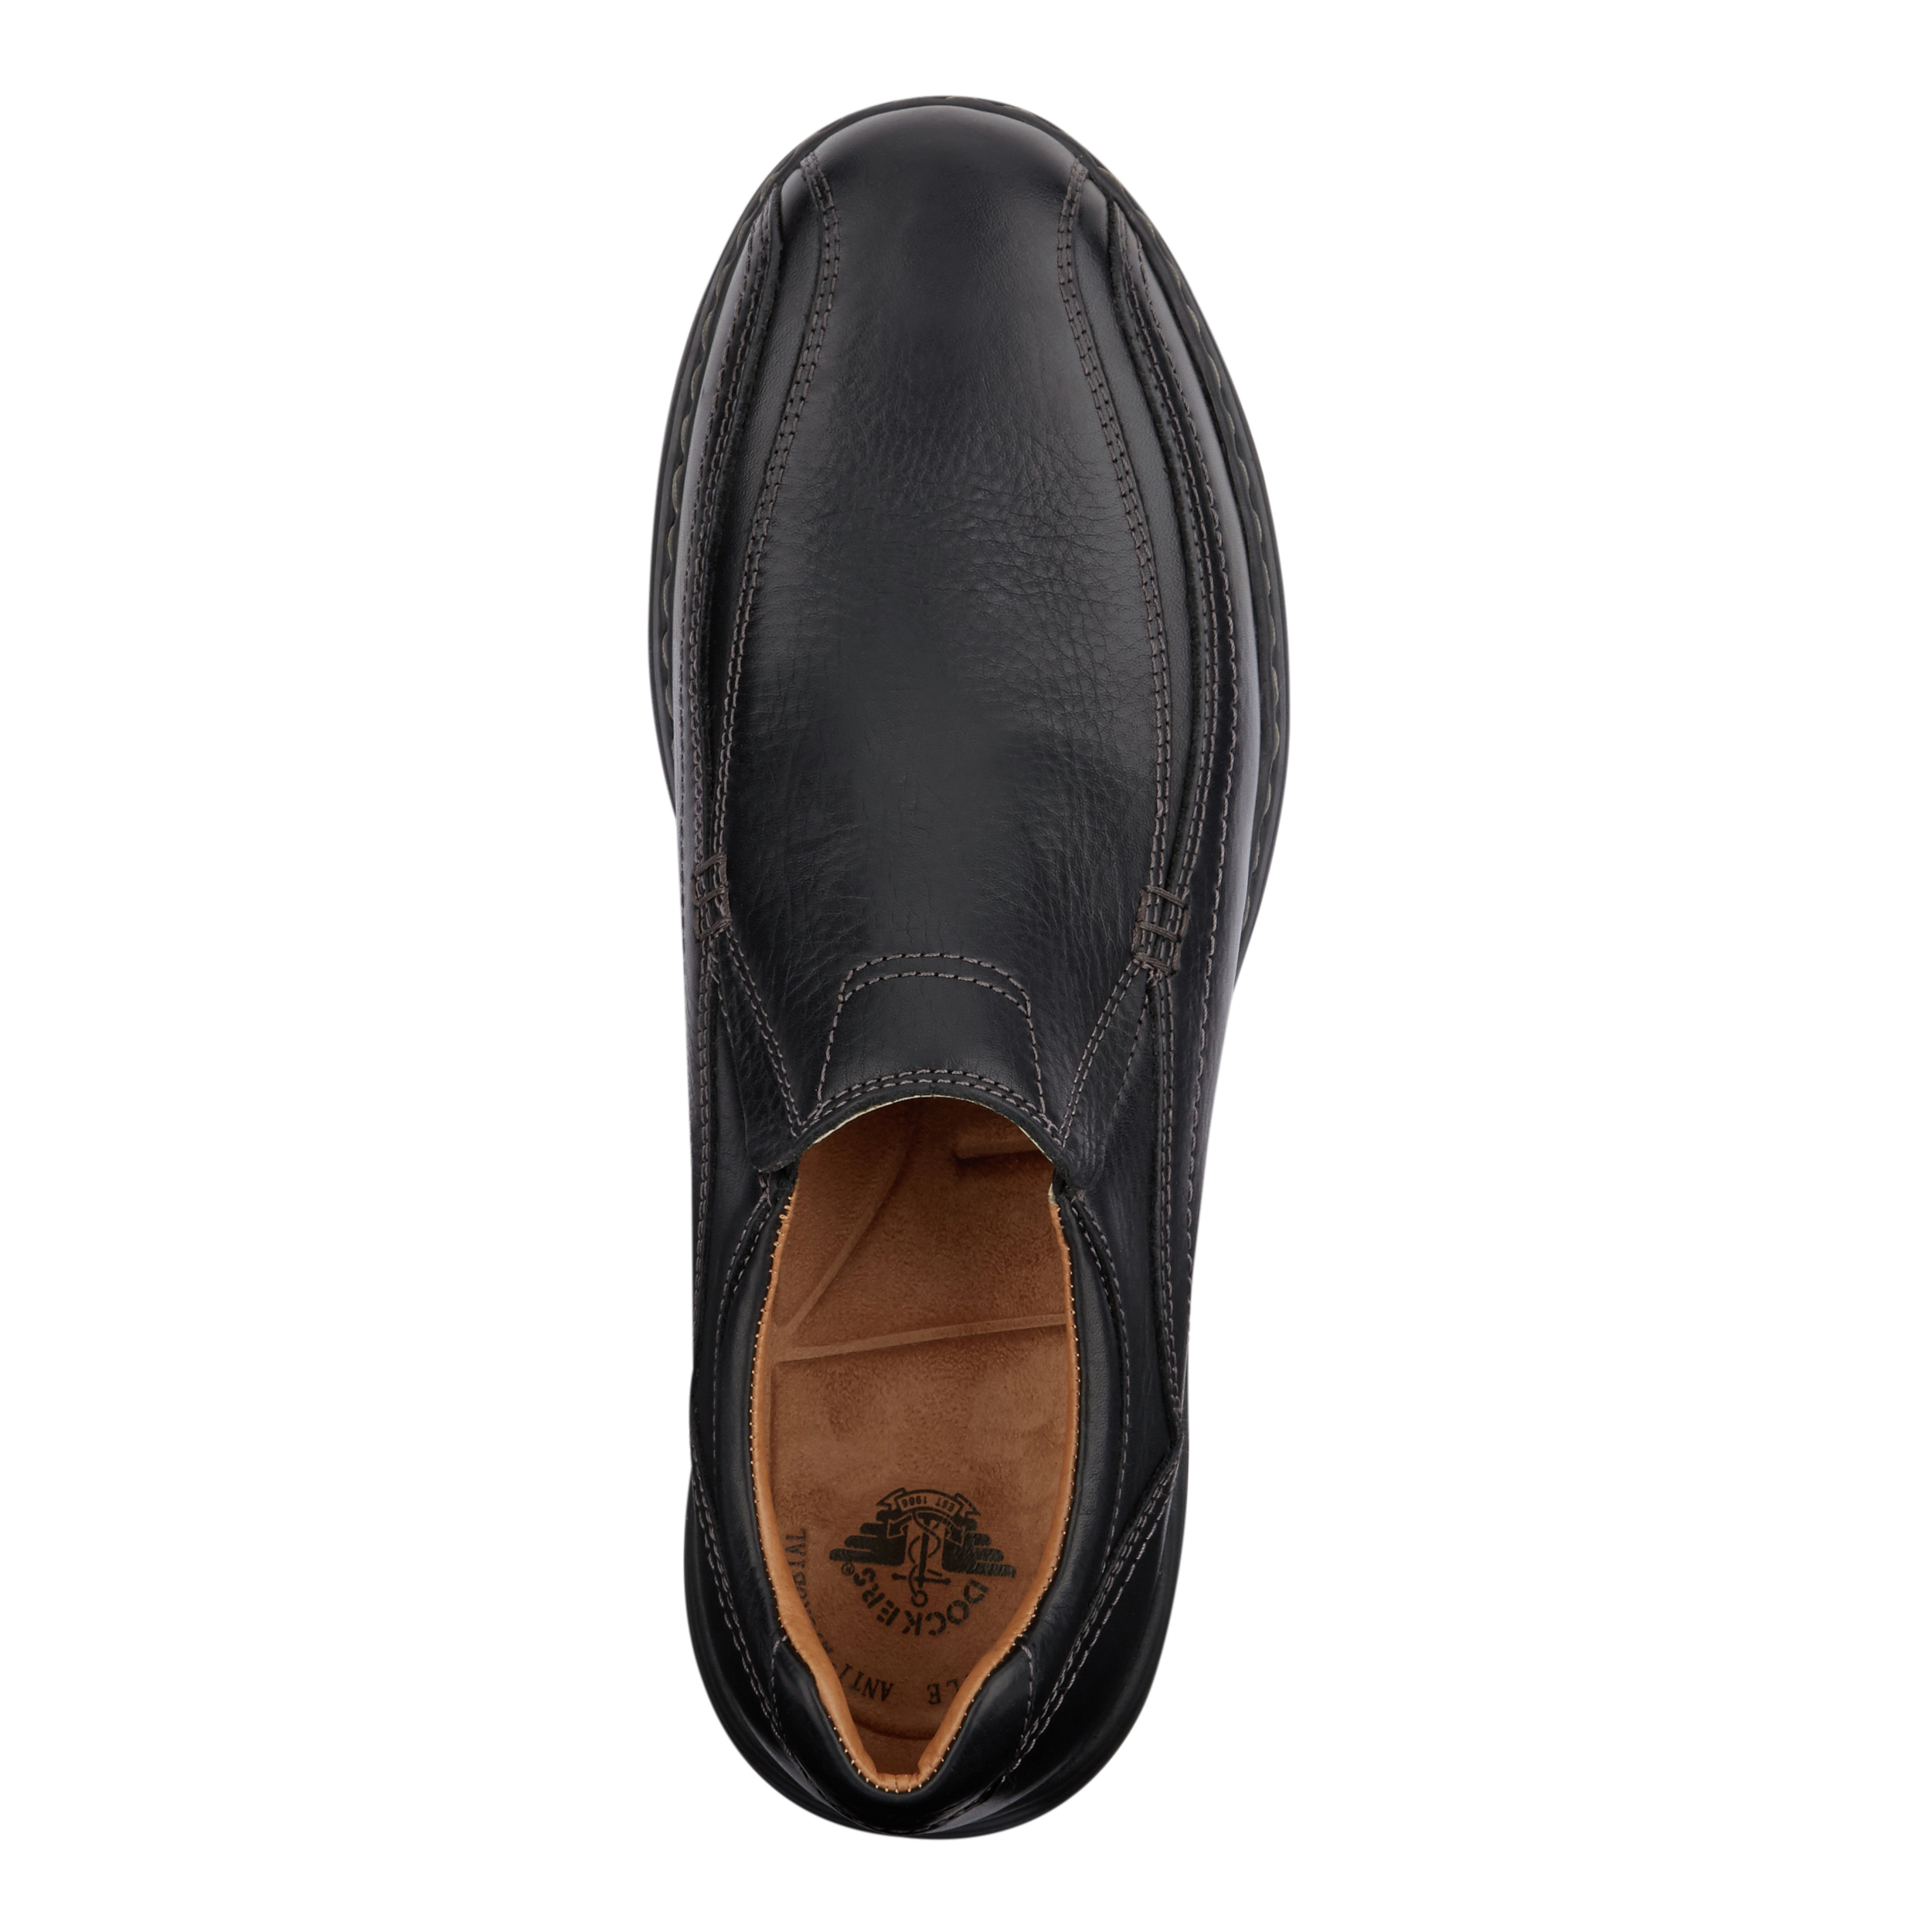 Dockers-Mens-Mosley-Genuine-Leather-Dress-Casual-Slip-on-Rubber-Sole-Shoe thumbnail 8